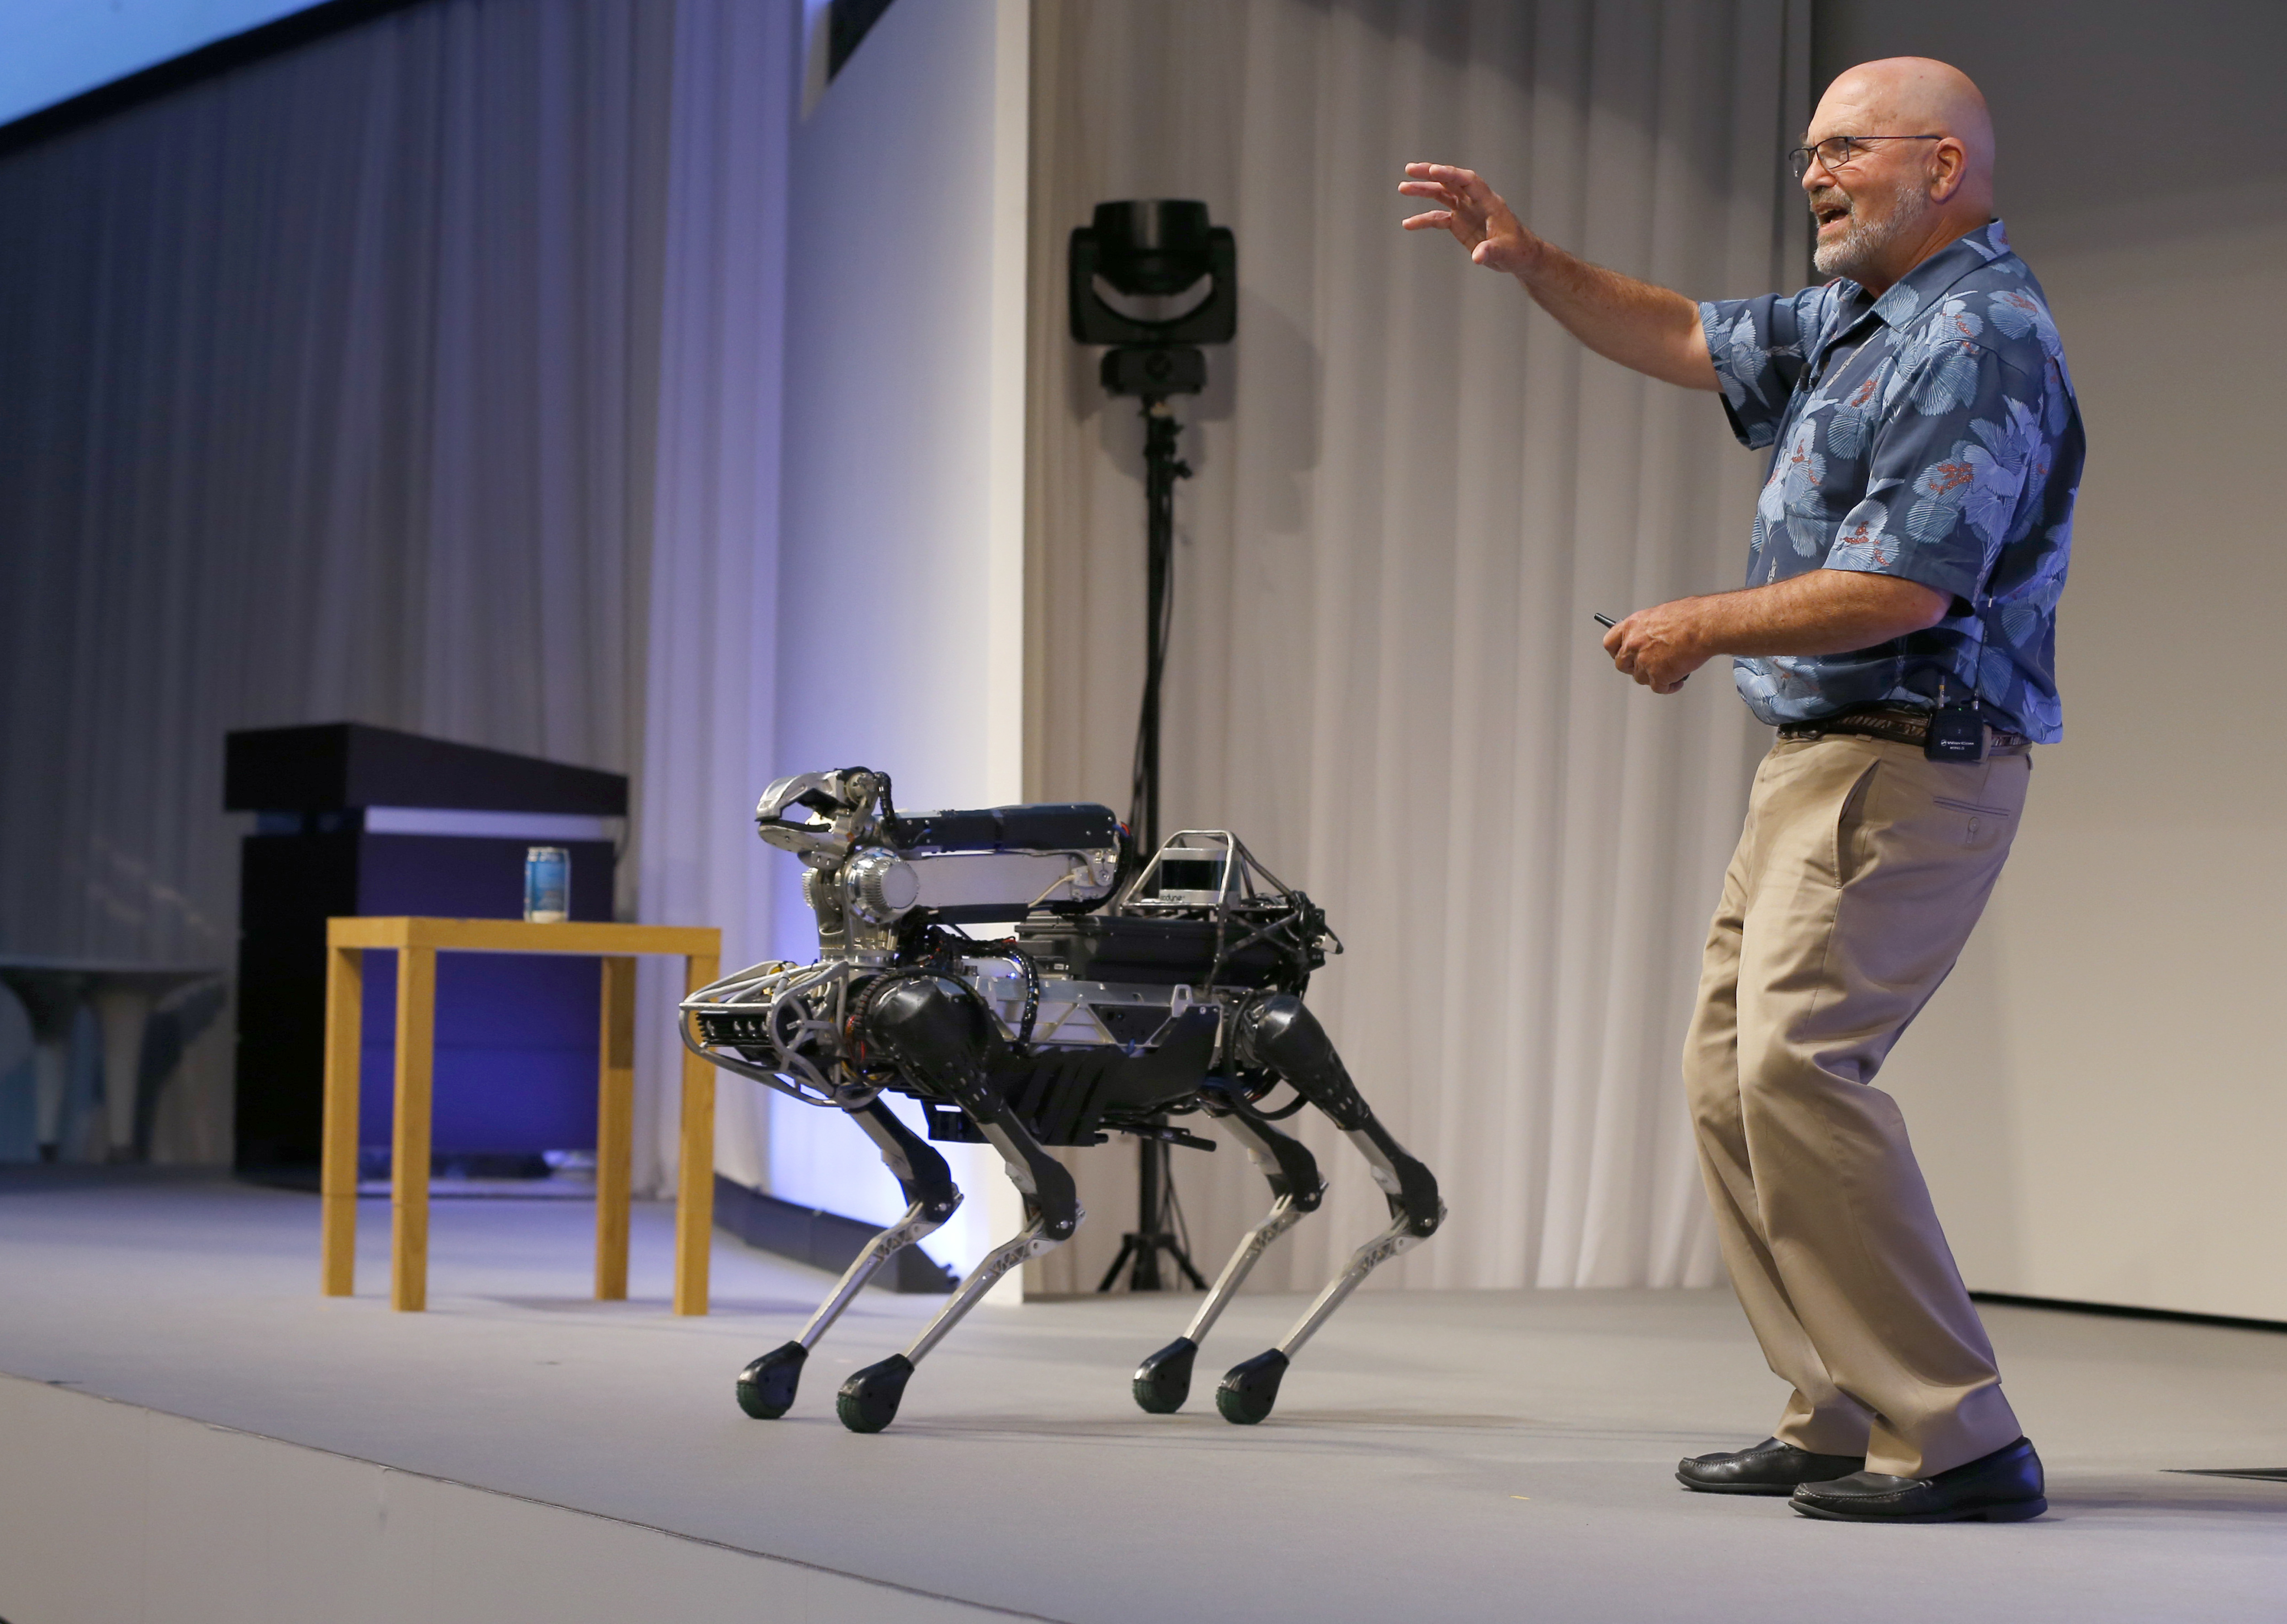 Newest Boston Dynamics robot lifts boxes with ease in video - The